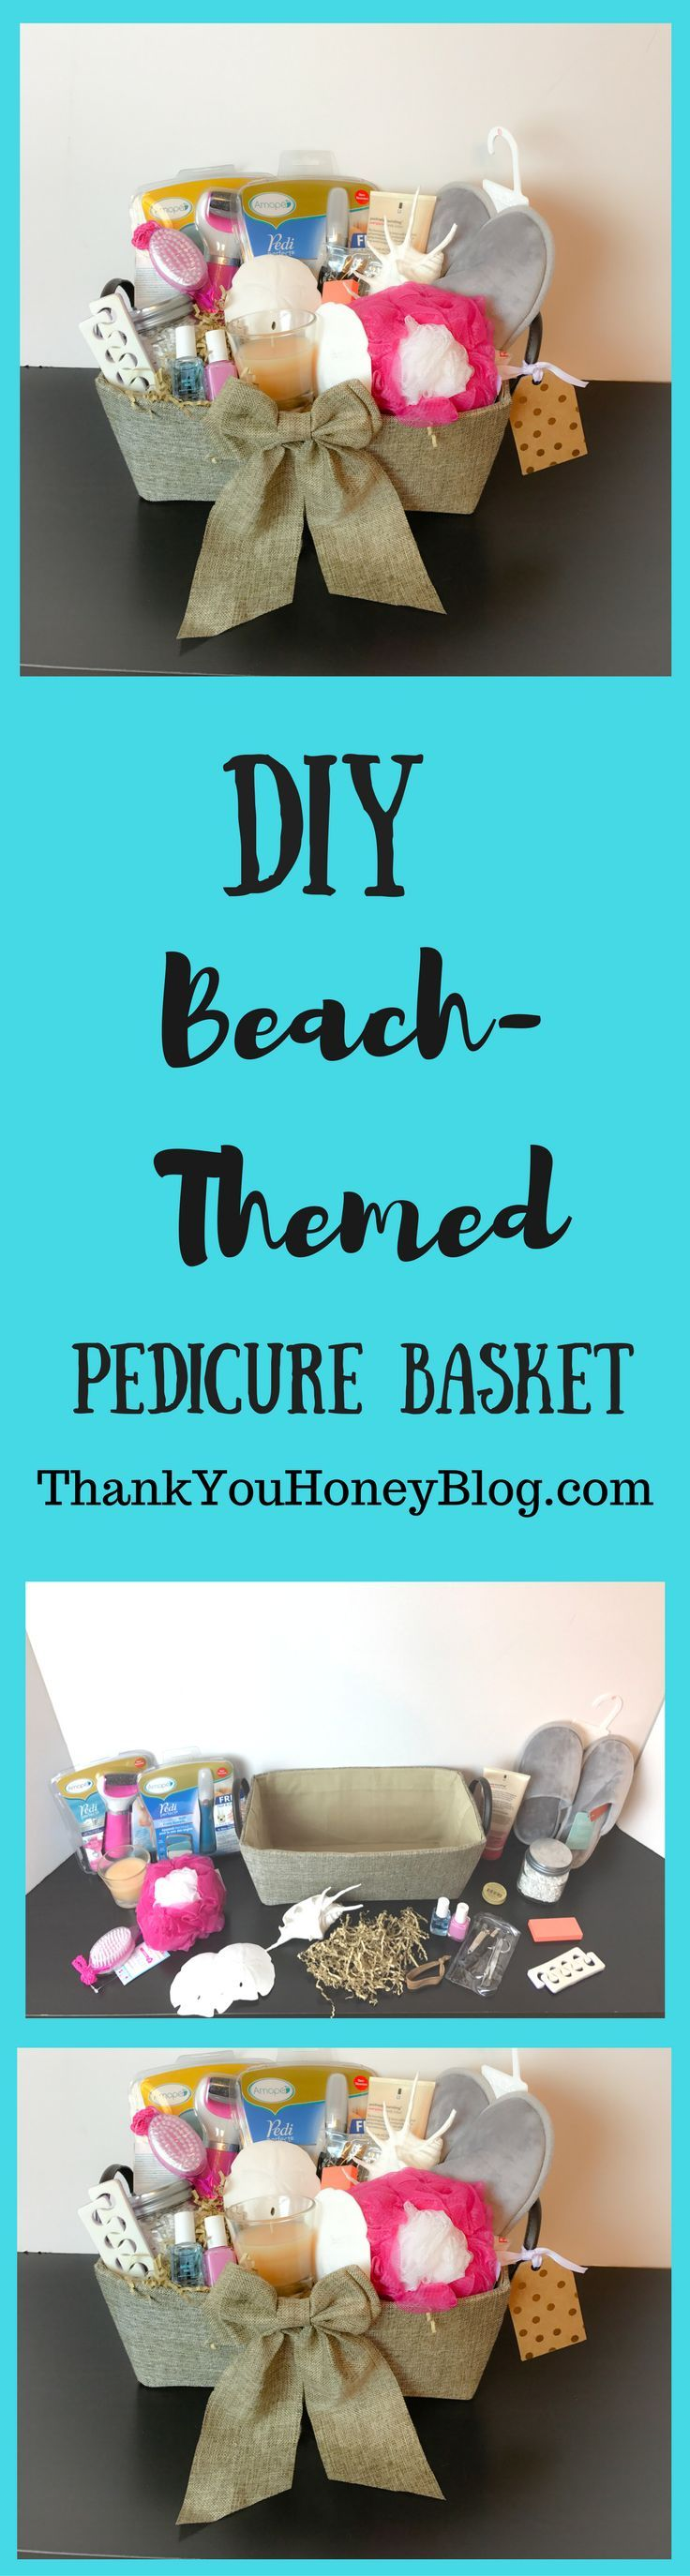 DIY Beach- Themed Pedicure Basket. Click through & PIN IT! Follow Us on Pinterest + Subscribe to ThankYouHoneyBlog.com. Holiday Gift Ideas, Holidays, DIY Beach- Themed Pedicure Basket, Gifts, DIY Gift Basket, DIY, Christmas, Pedicure, Beach, Gift Idea, Gifts, Holiday   #AmopeForTheHoliday {ad}